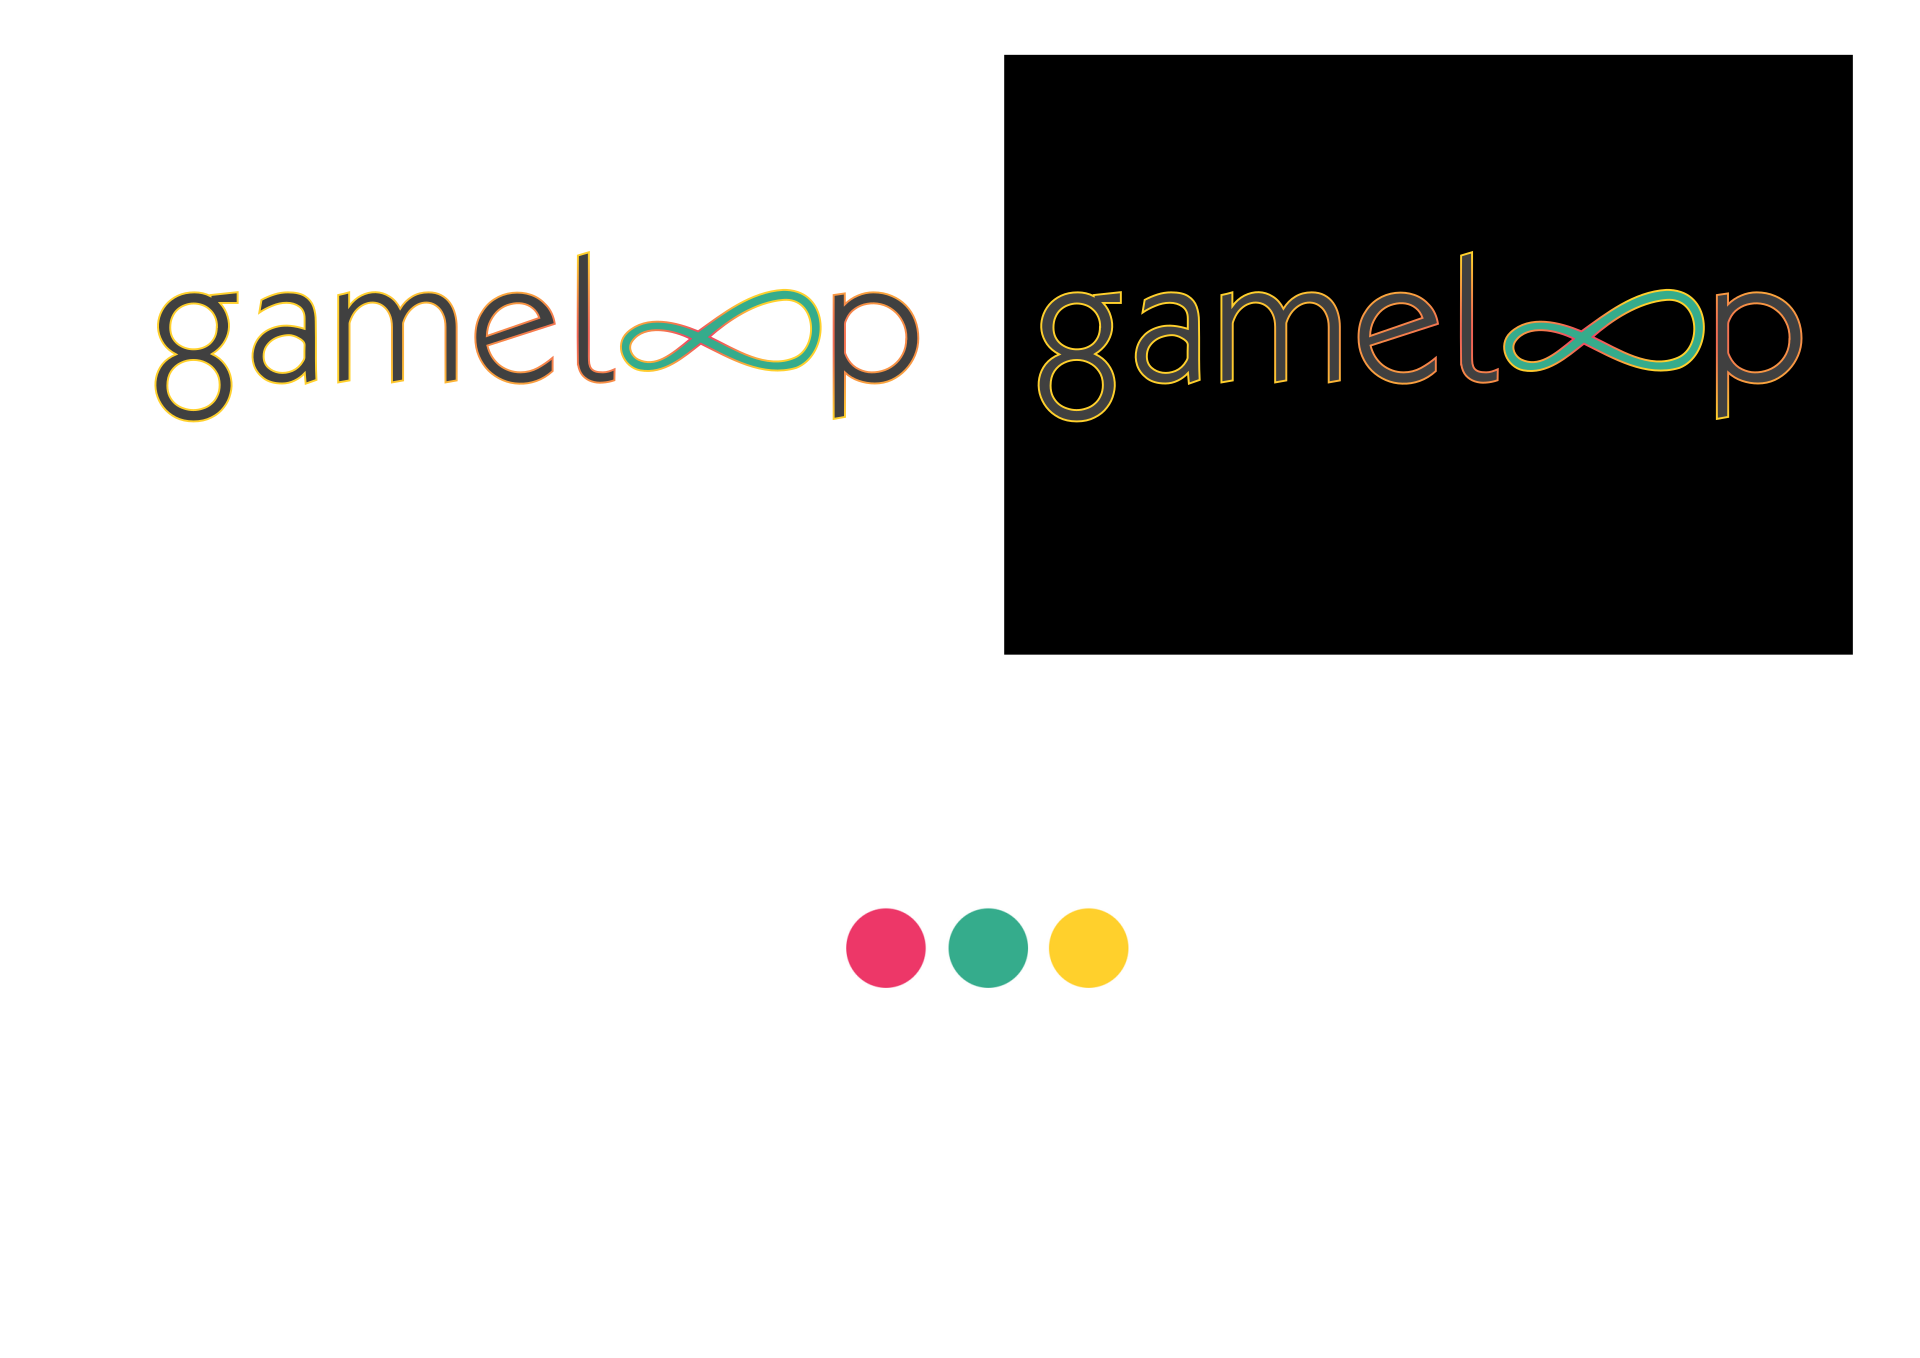 image logo-with-loop-symbolpng.png